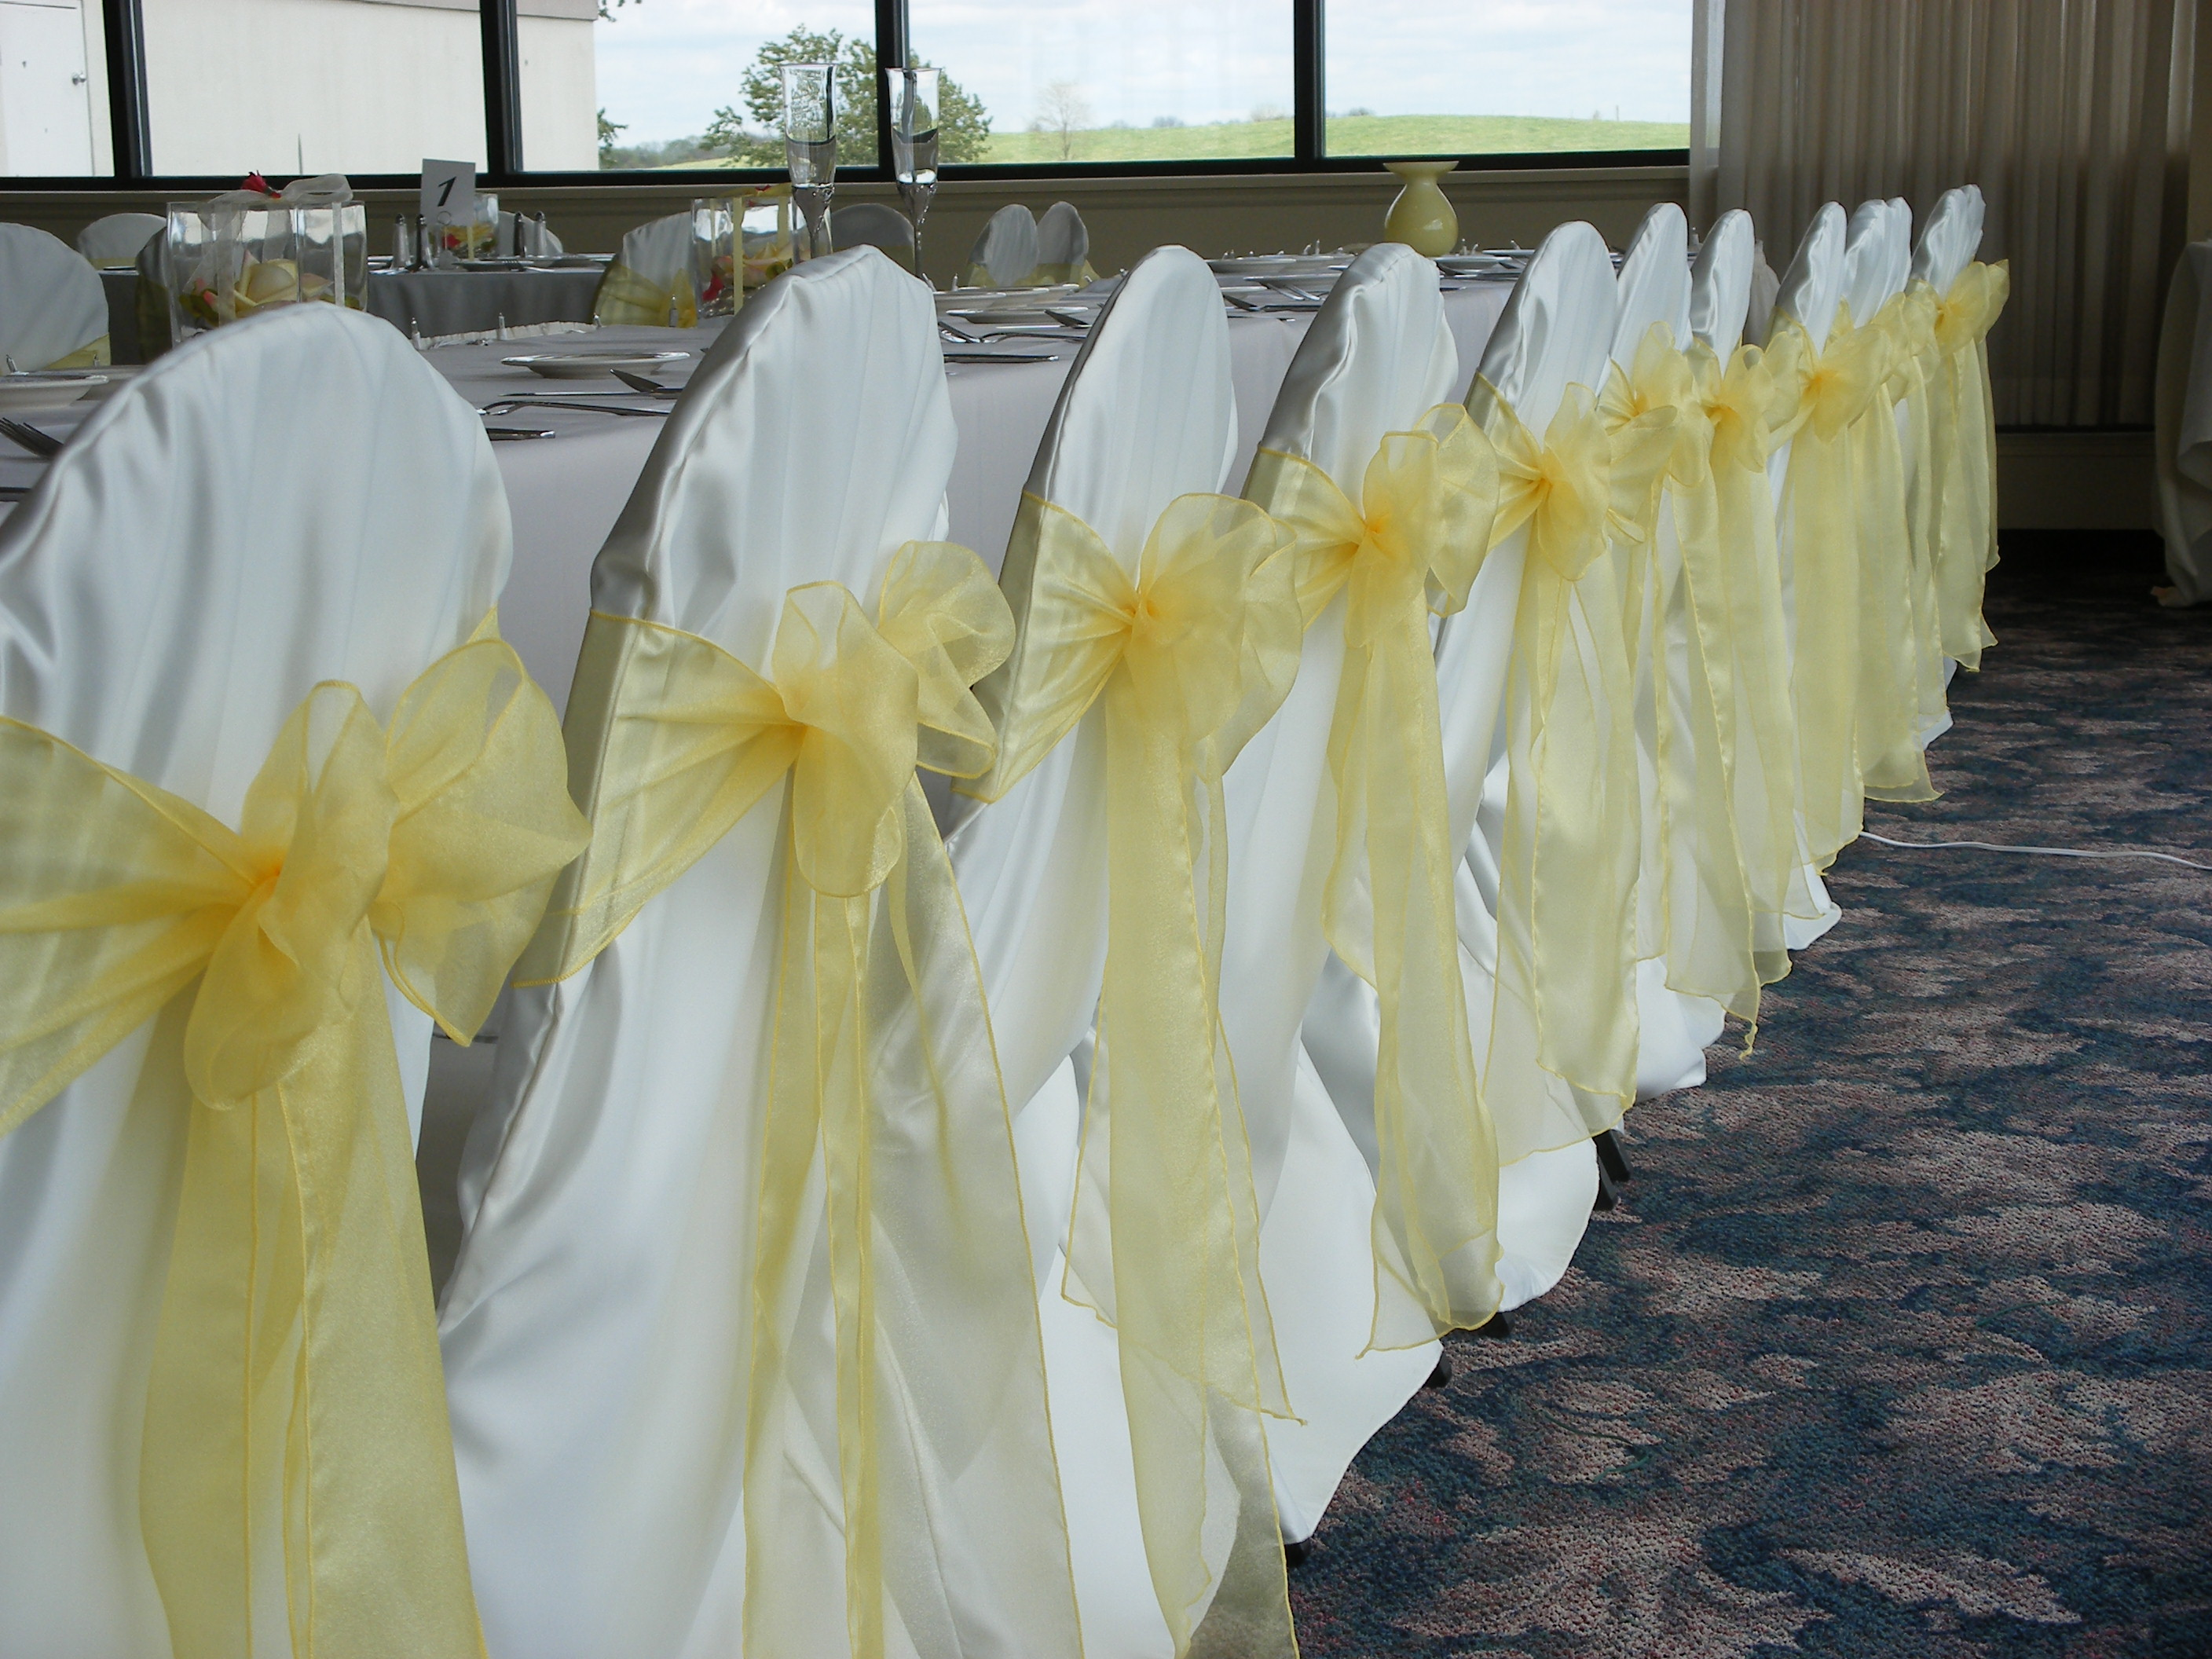 White Banquet Chair Covers - Sunshine yellow classic white covers